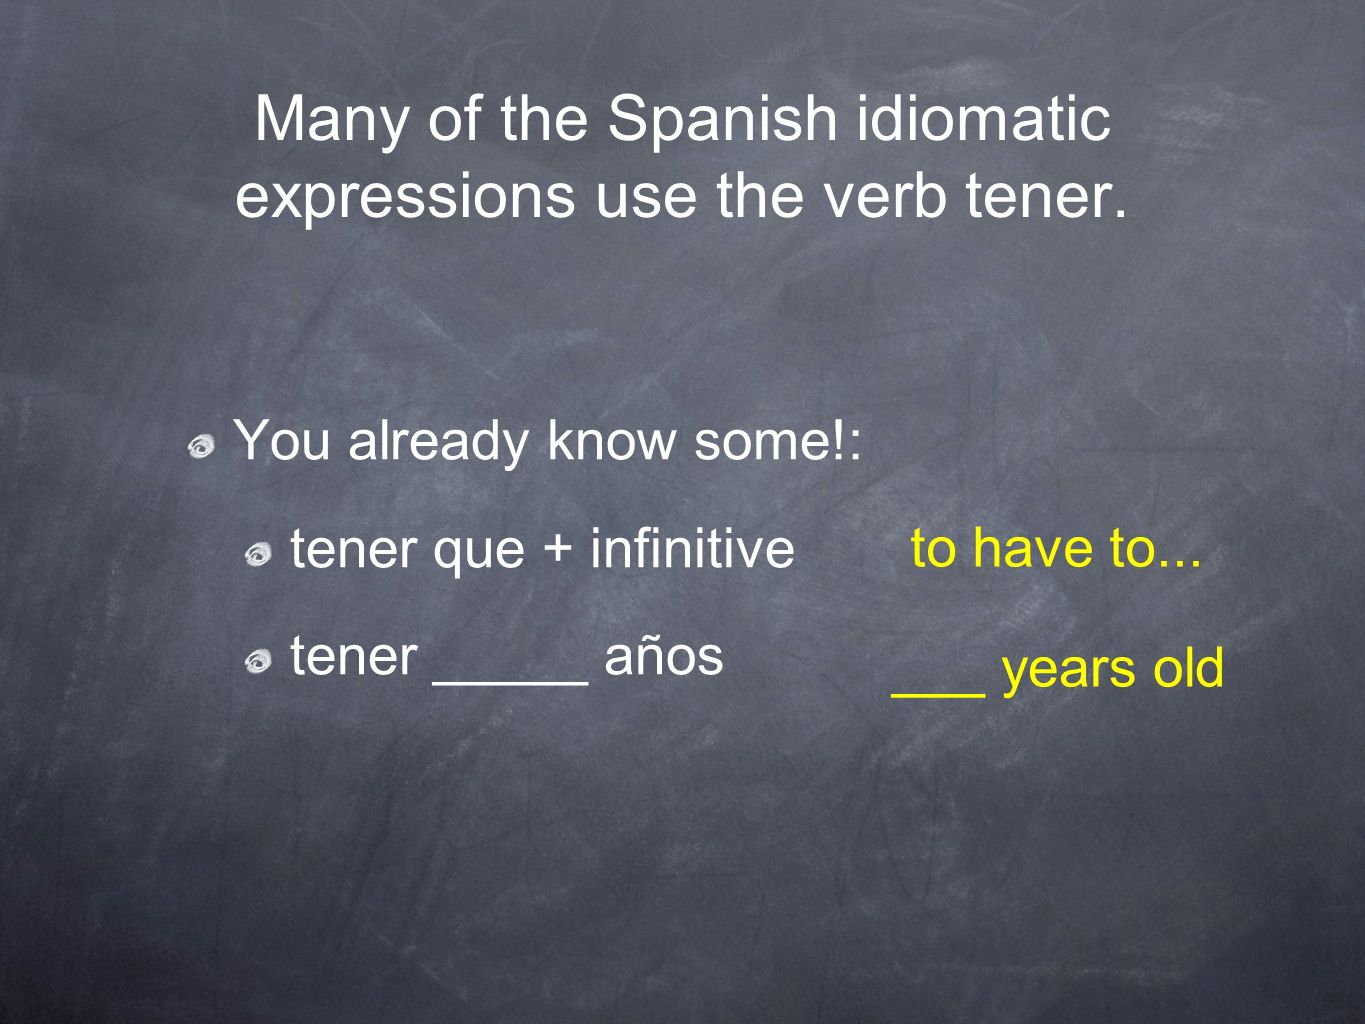 Many of the Spanish idiomatic expressions use the verb tener.